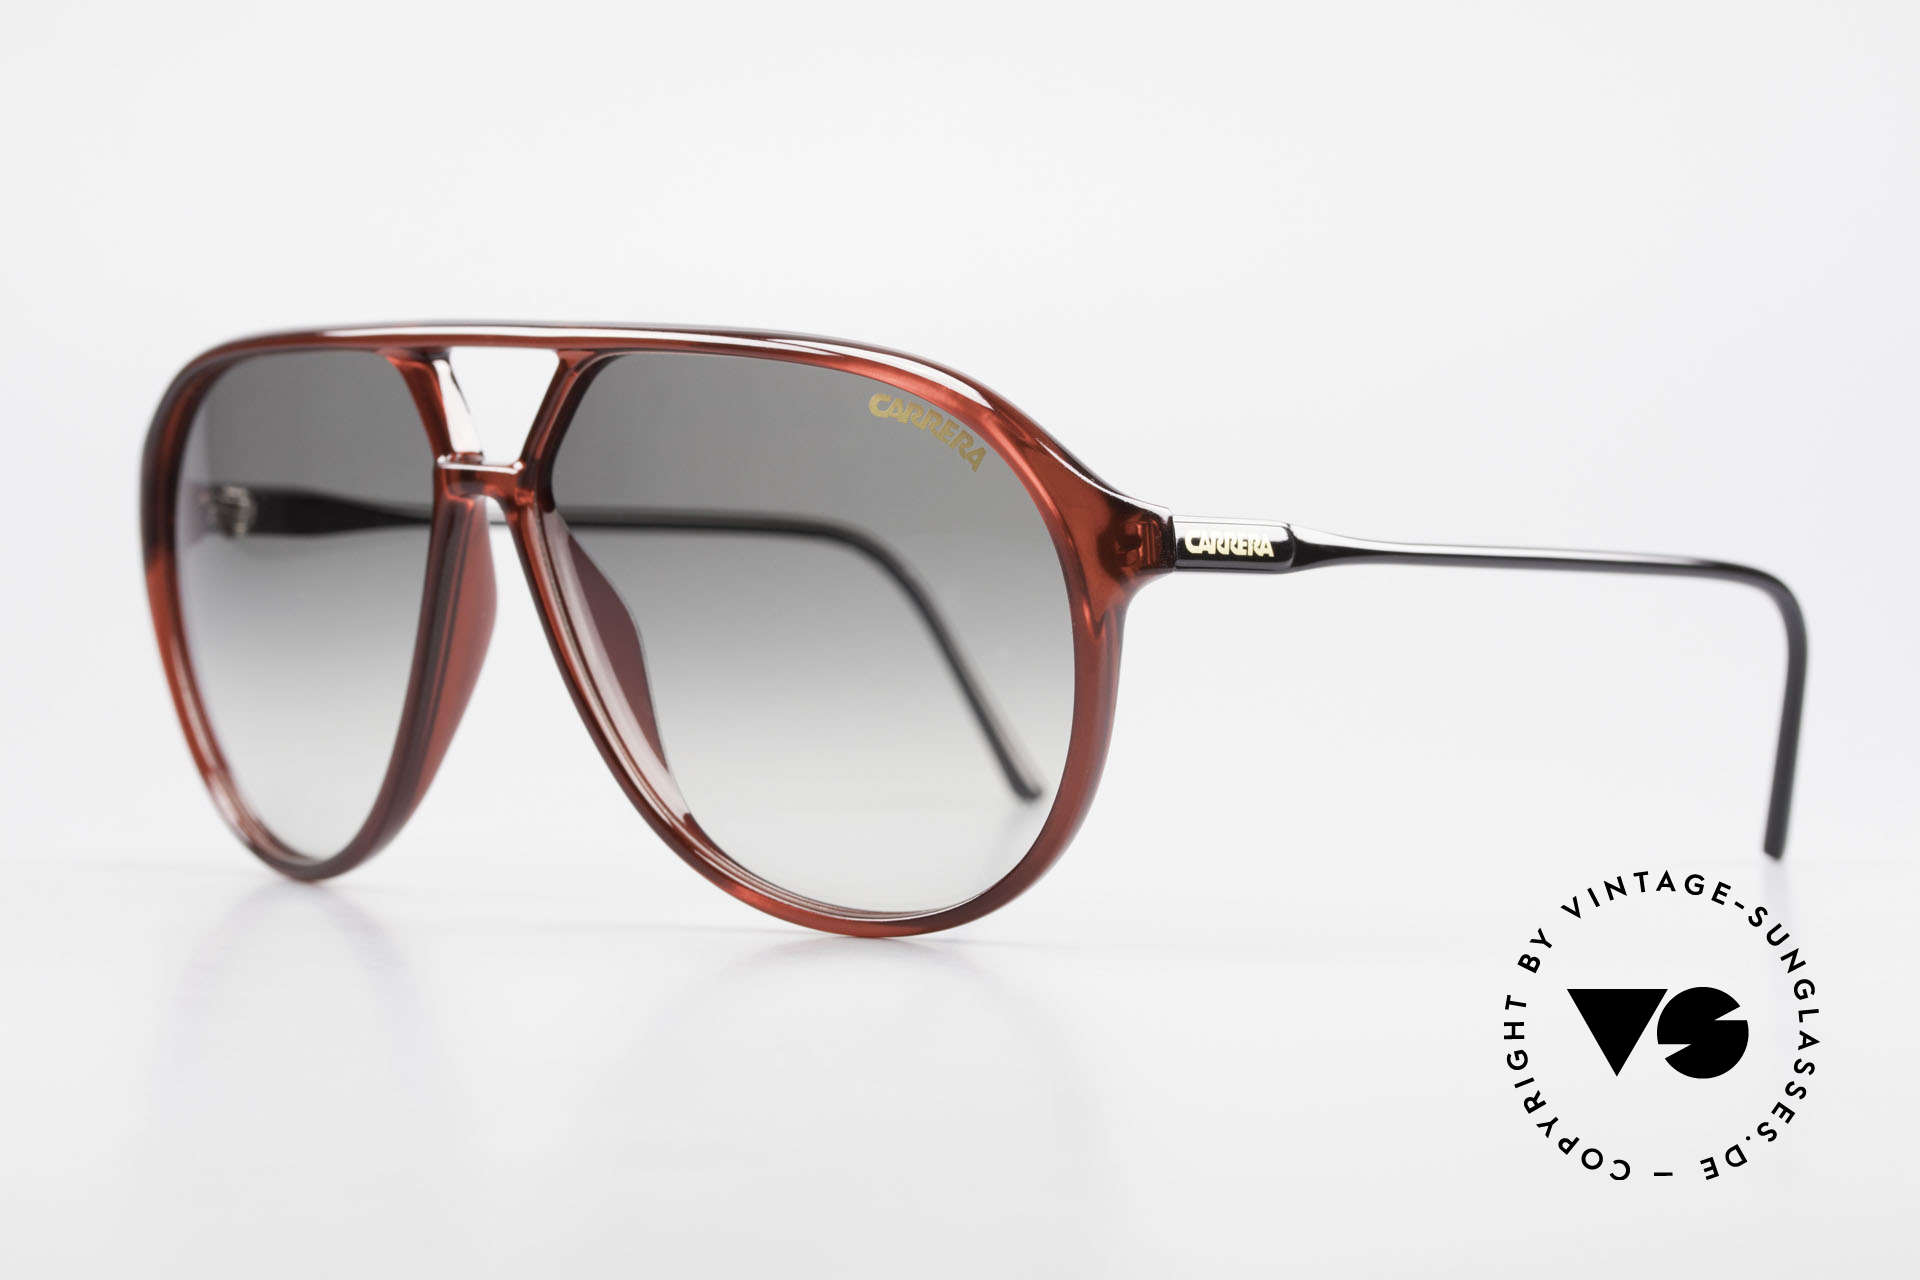 Carrera 5425 Robert De Niro Sunglasses 90's, sporty and functional design as quality characteristic, Made for Men